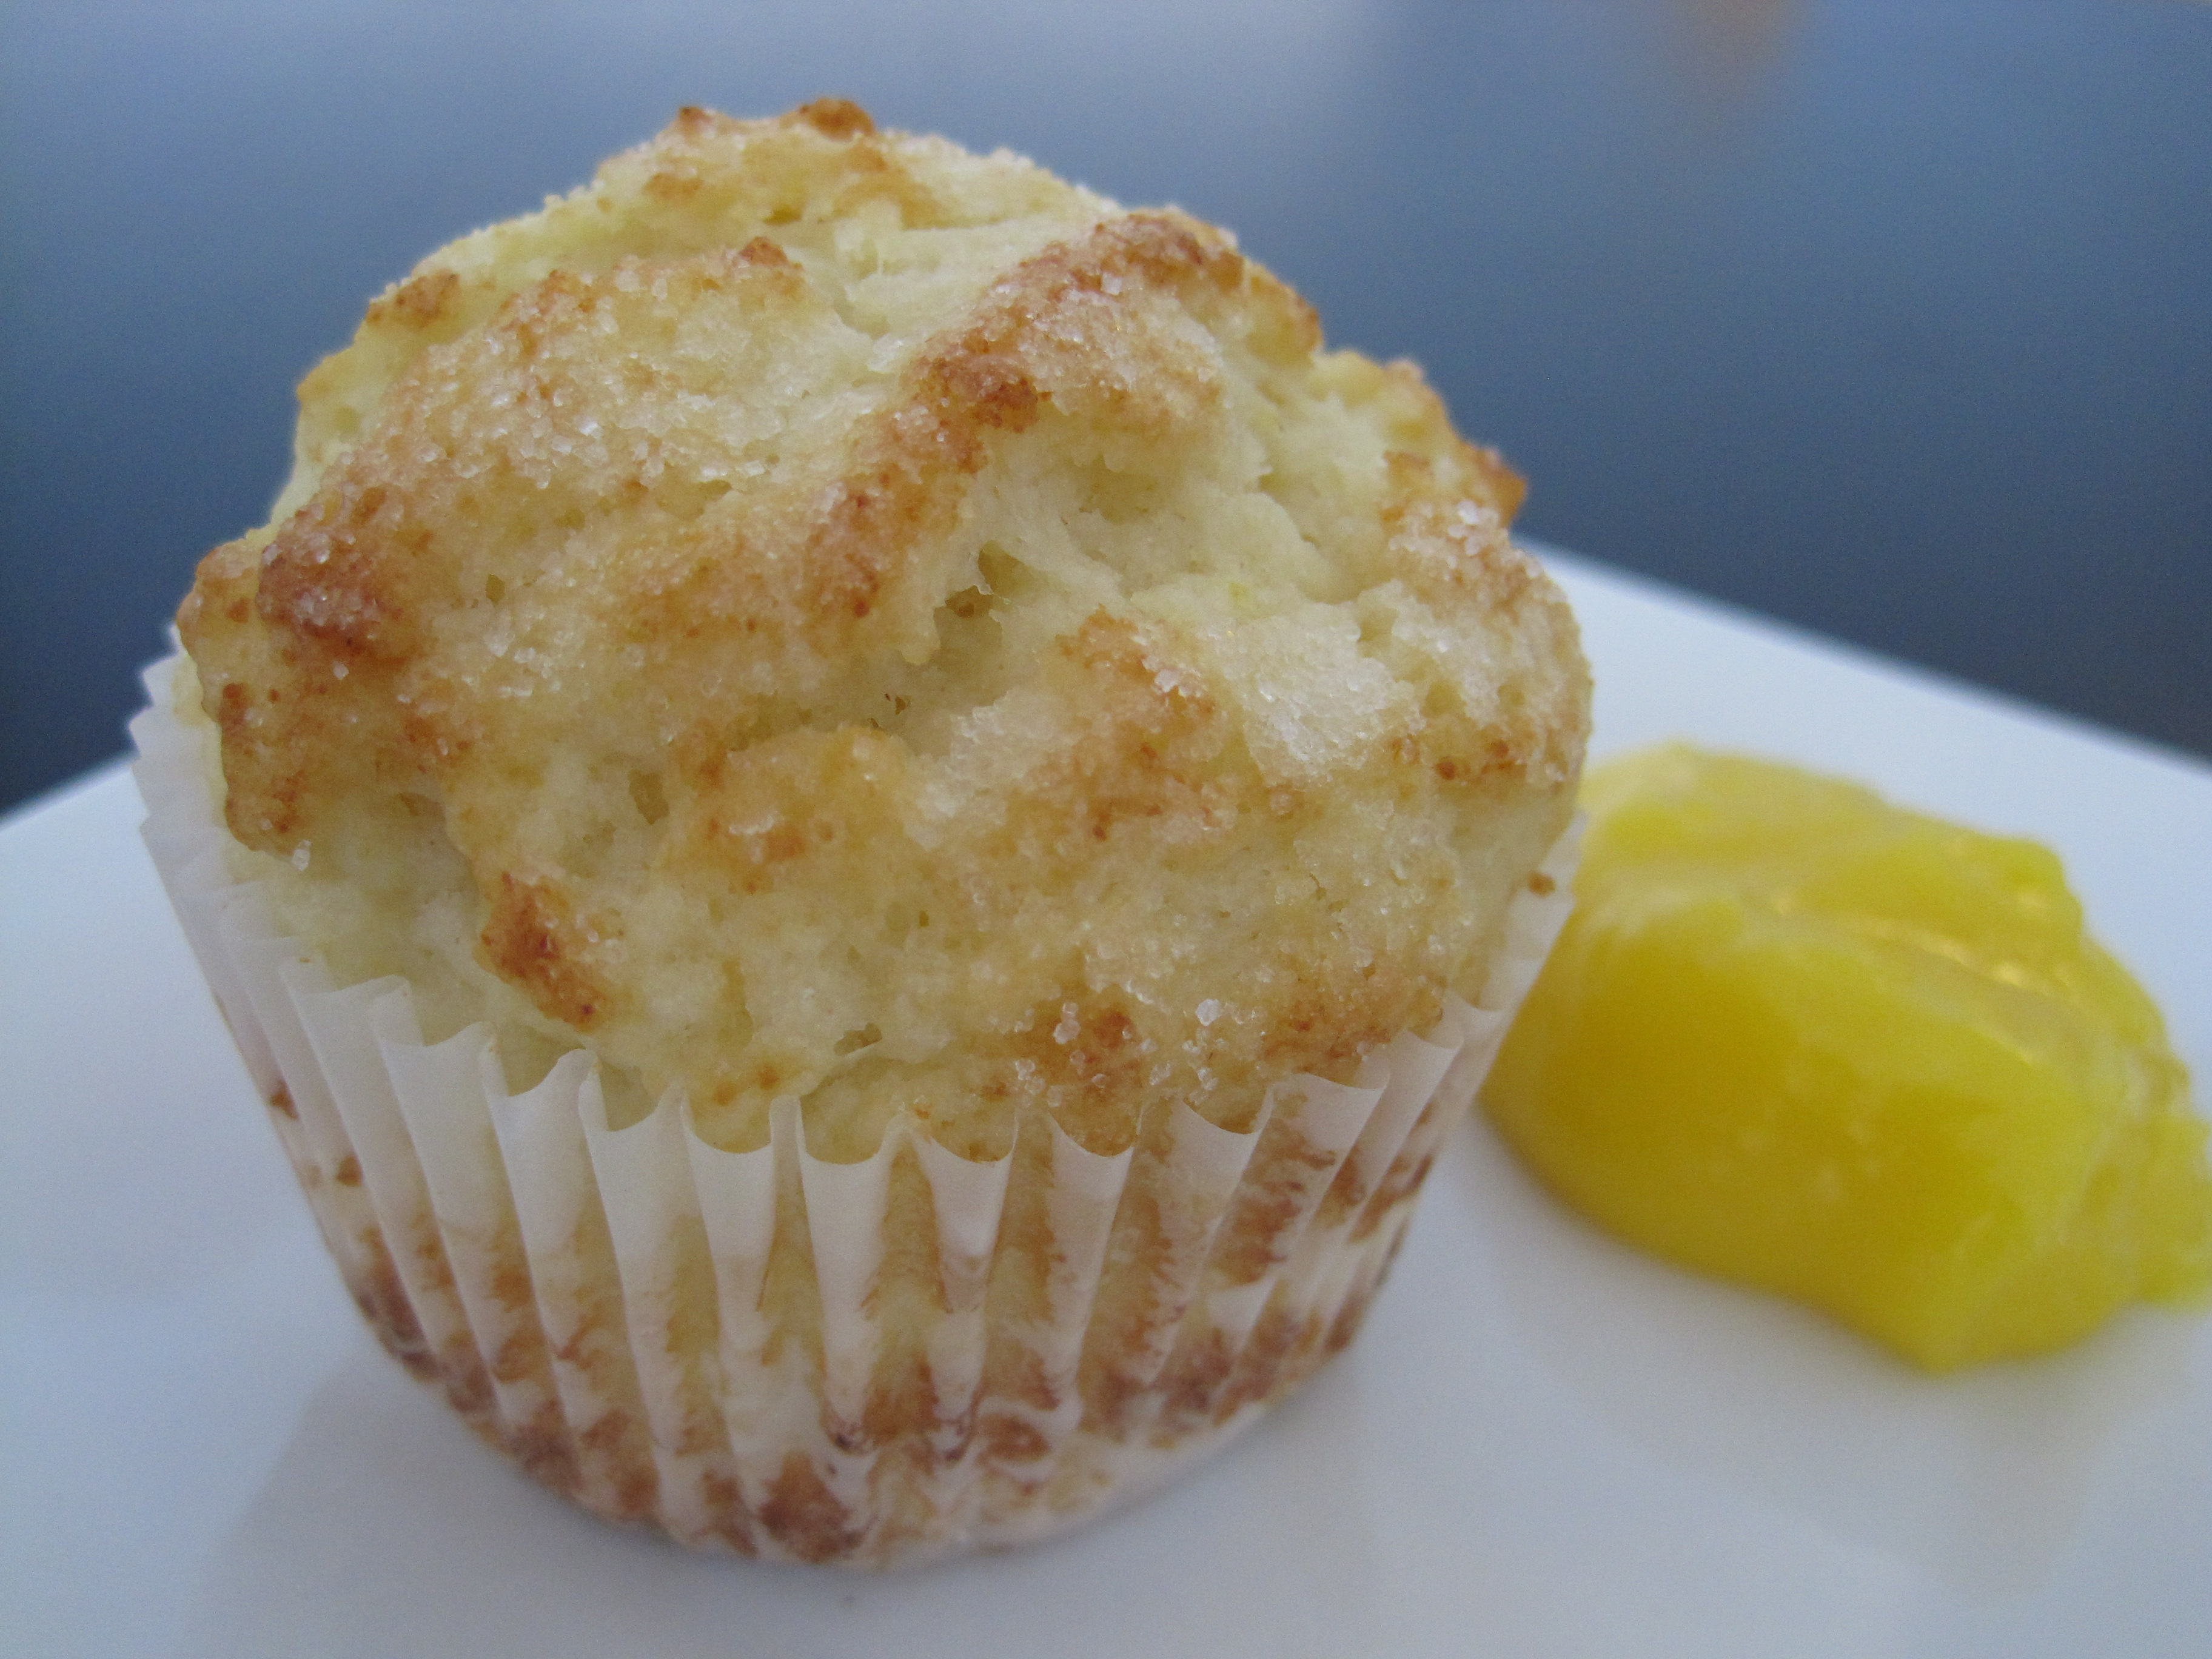 Lemon Ricotta Muffins with Lemon Curd | Cooking with Alison